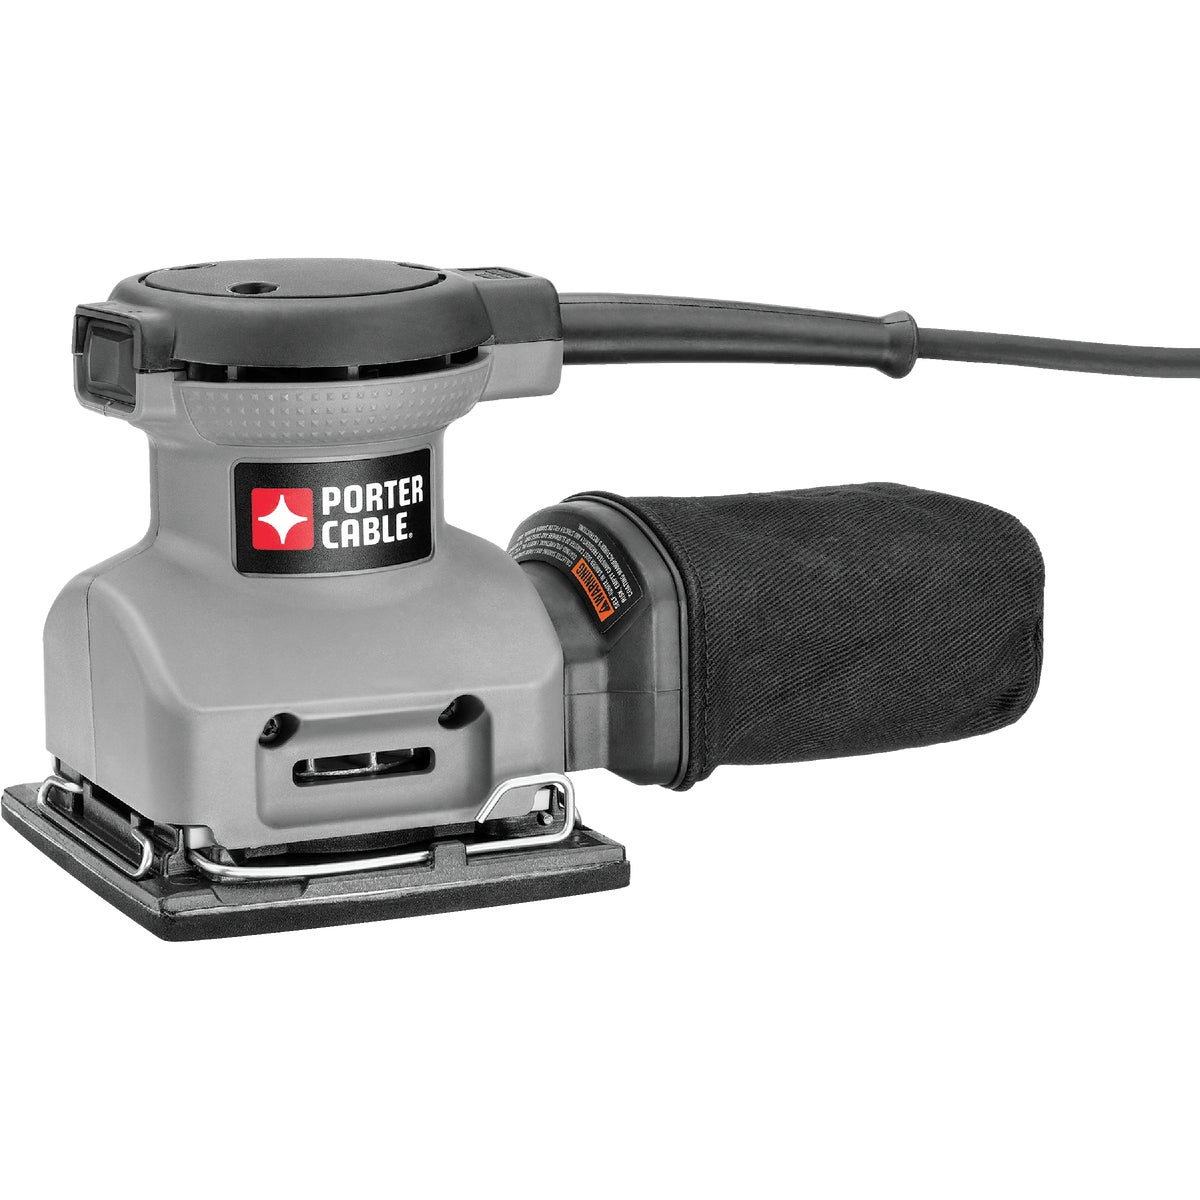 1/4 SHEET FINISH SANDER - 380 by DeWalt